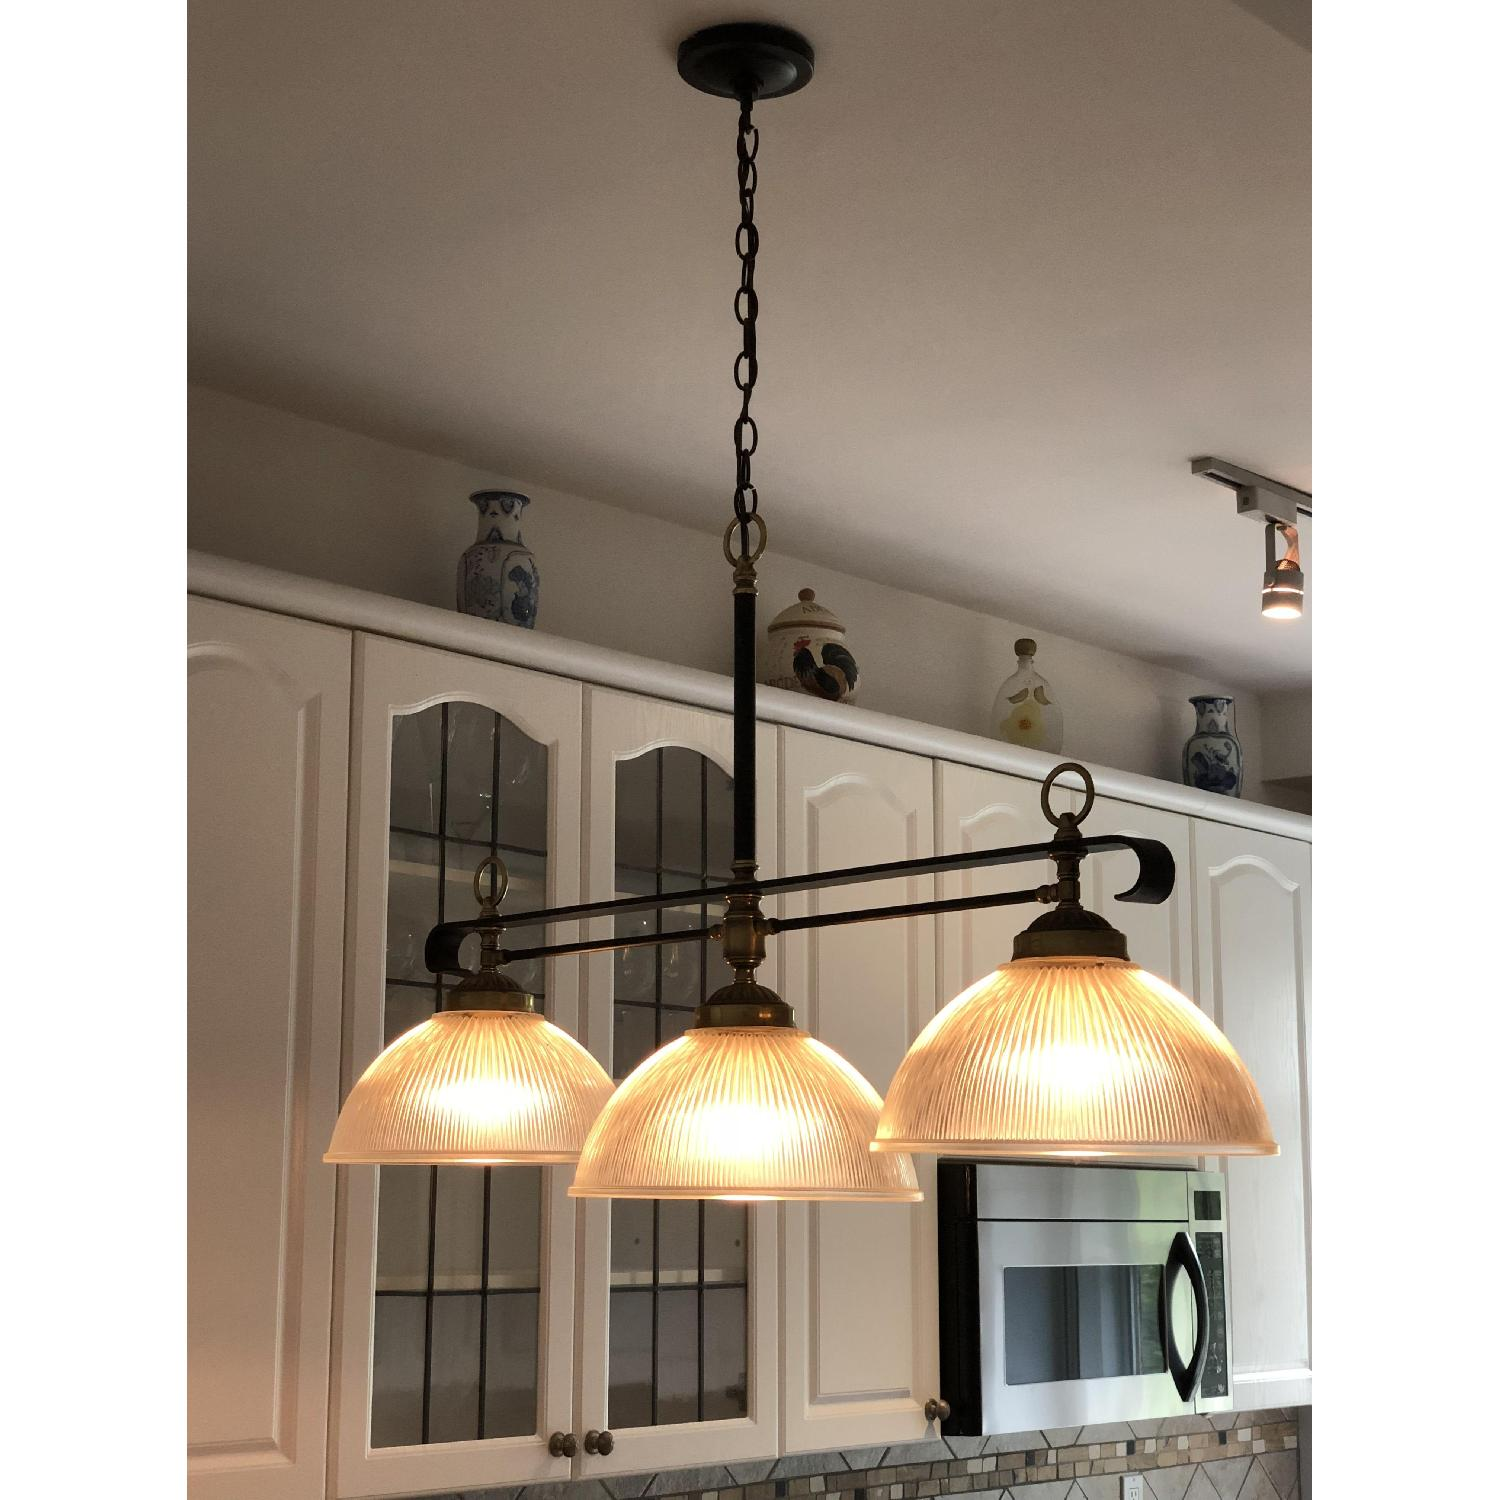 3-Light Ribbed Glass Dome Pendant Hanging Light Fixture